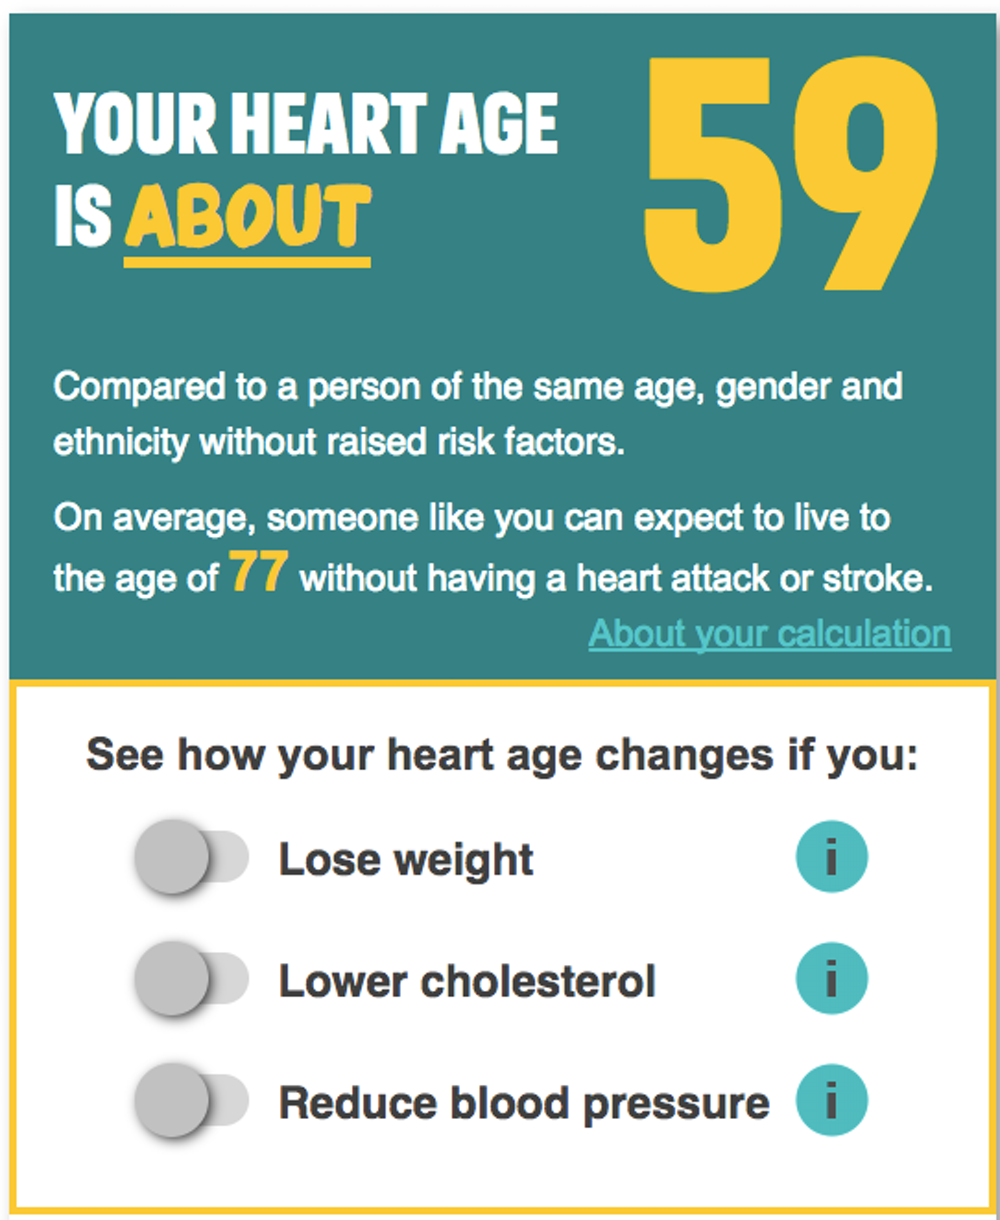 The NHS's What's your heart age? calculator (screenshot) - Image Credit:  NHS Health Check